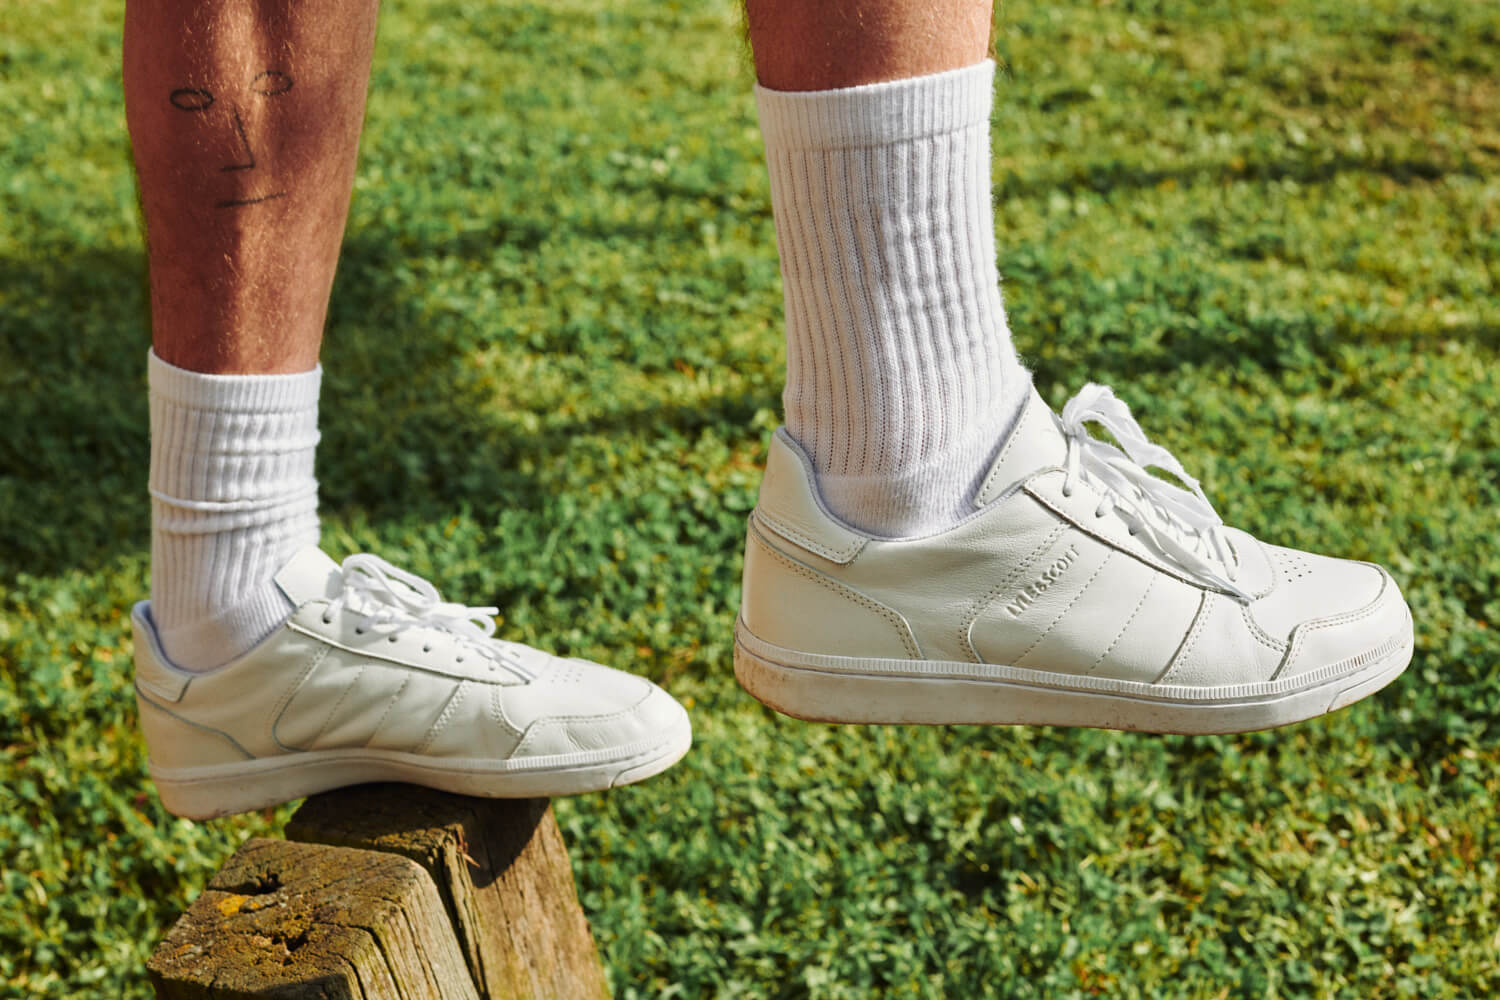 Socks and feet in white Lyle and Scott against grass